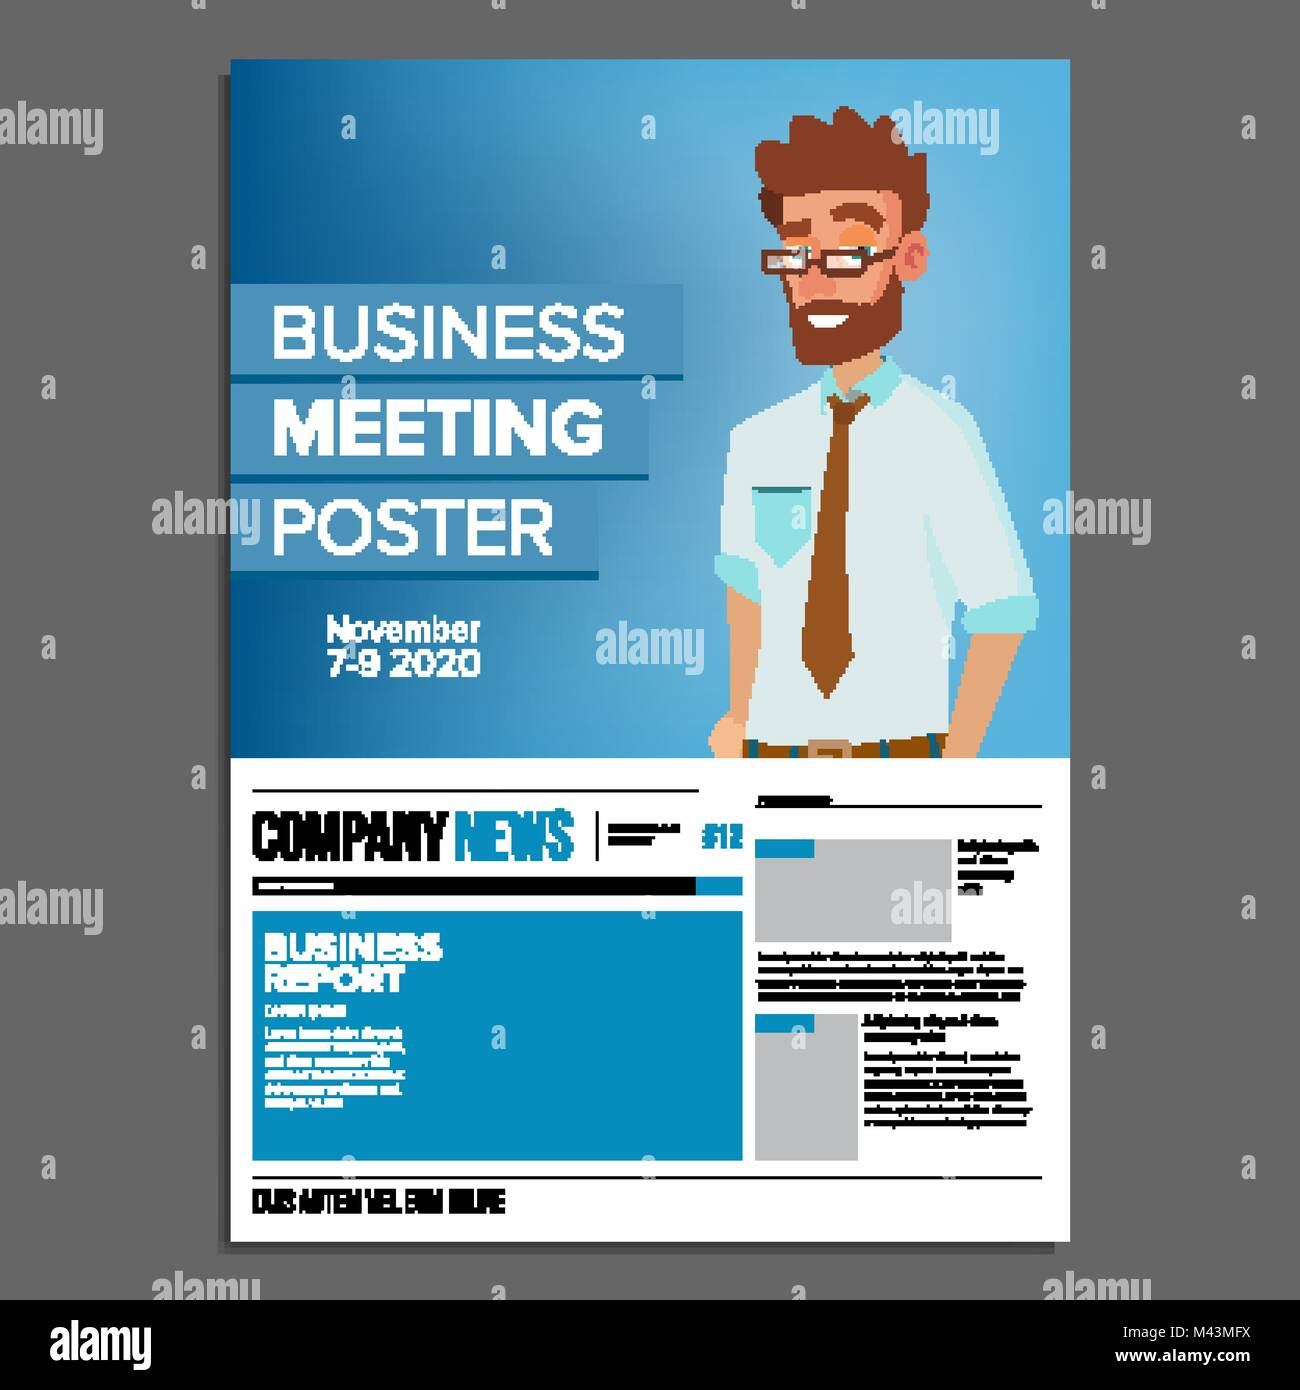 Business meeting poster vector businessman invitation for stock business meeting poster vector businessman invitation for conference forum brainstorming cover annual report a4 size flat cartoon illustration stopboris Images